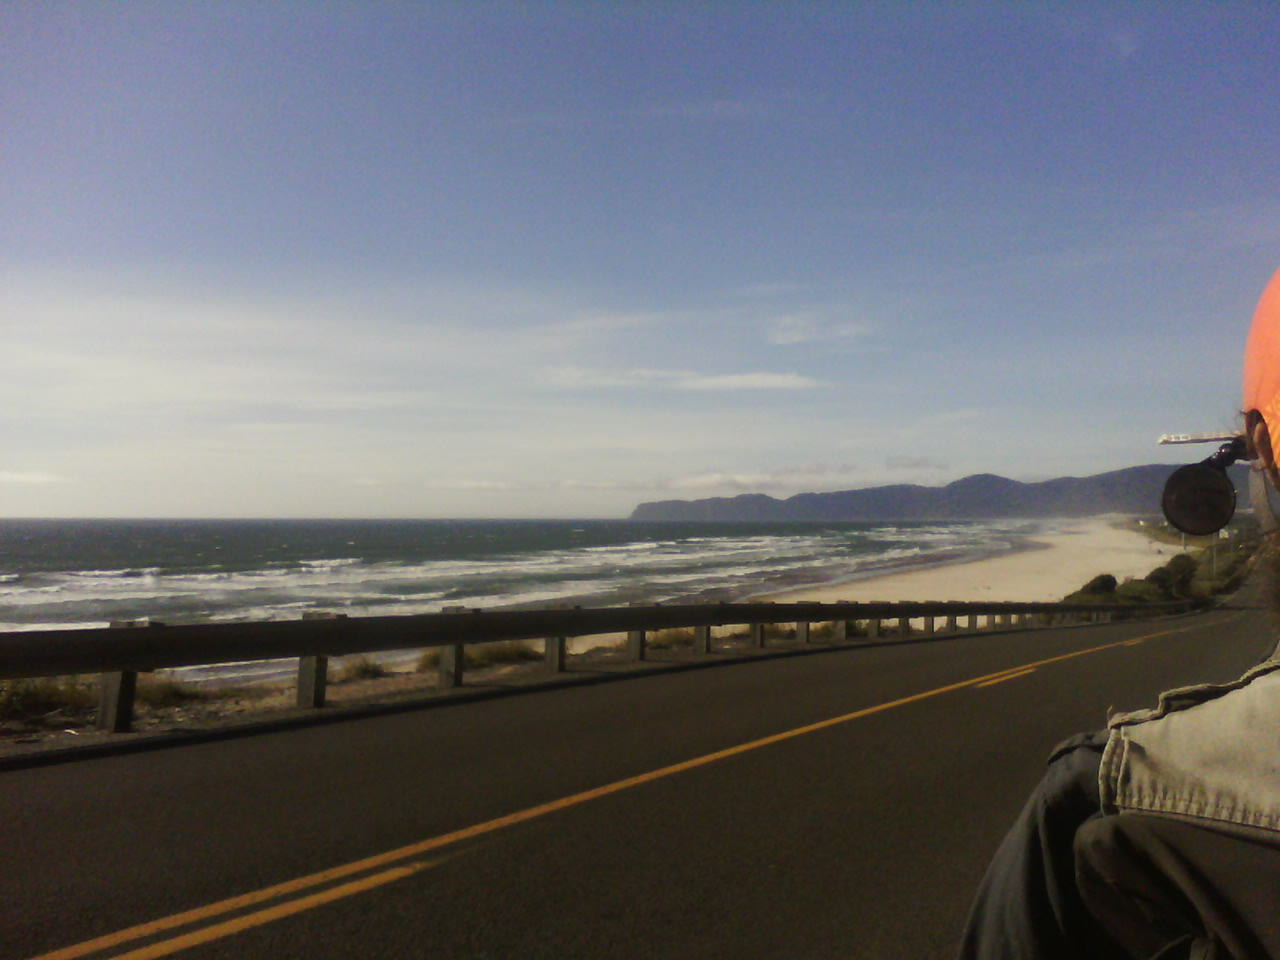 View of ocean from the road